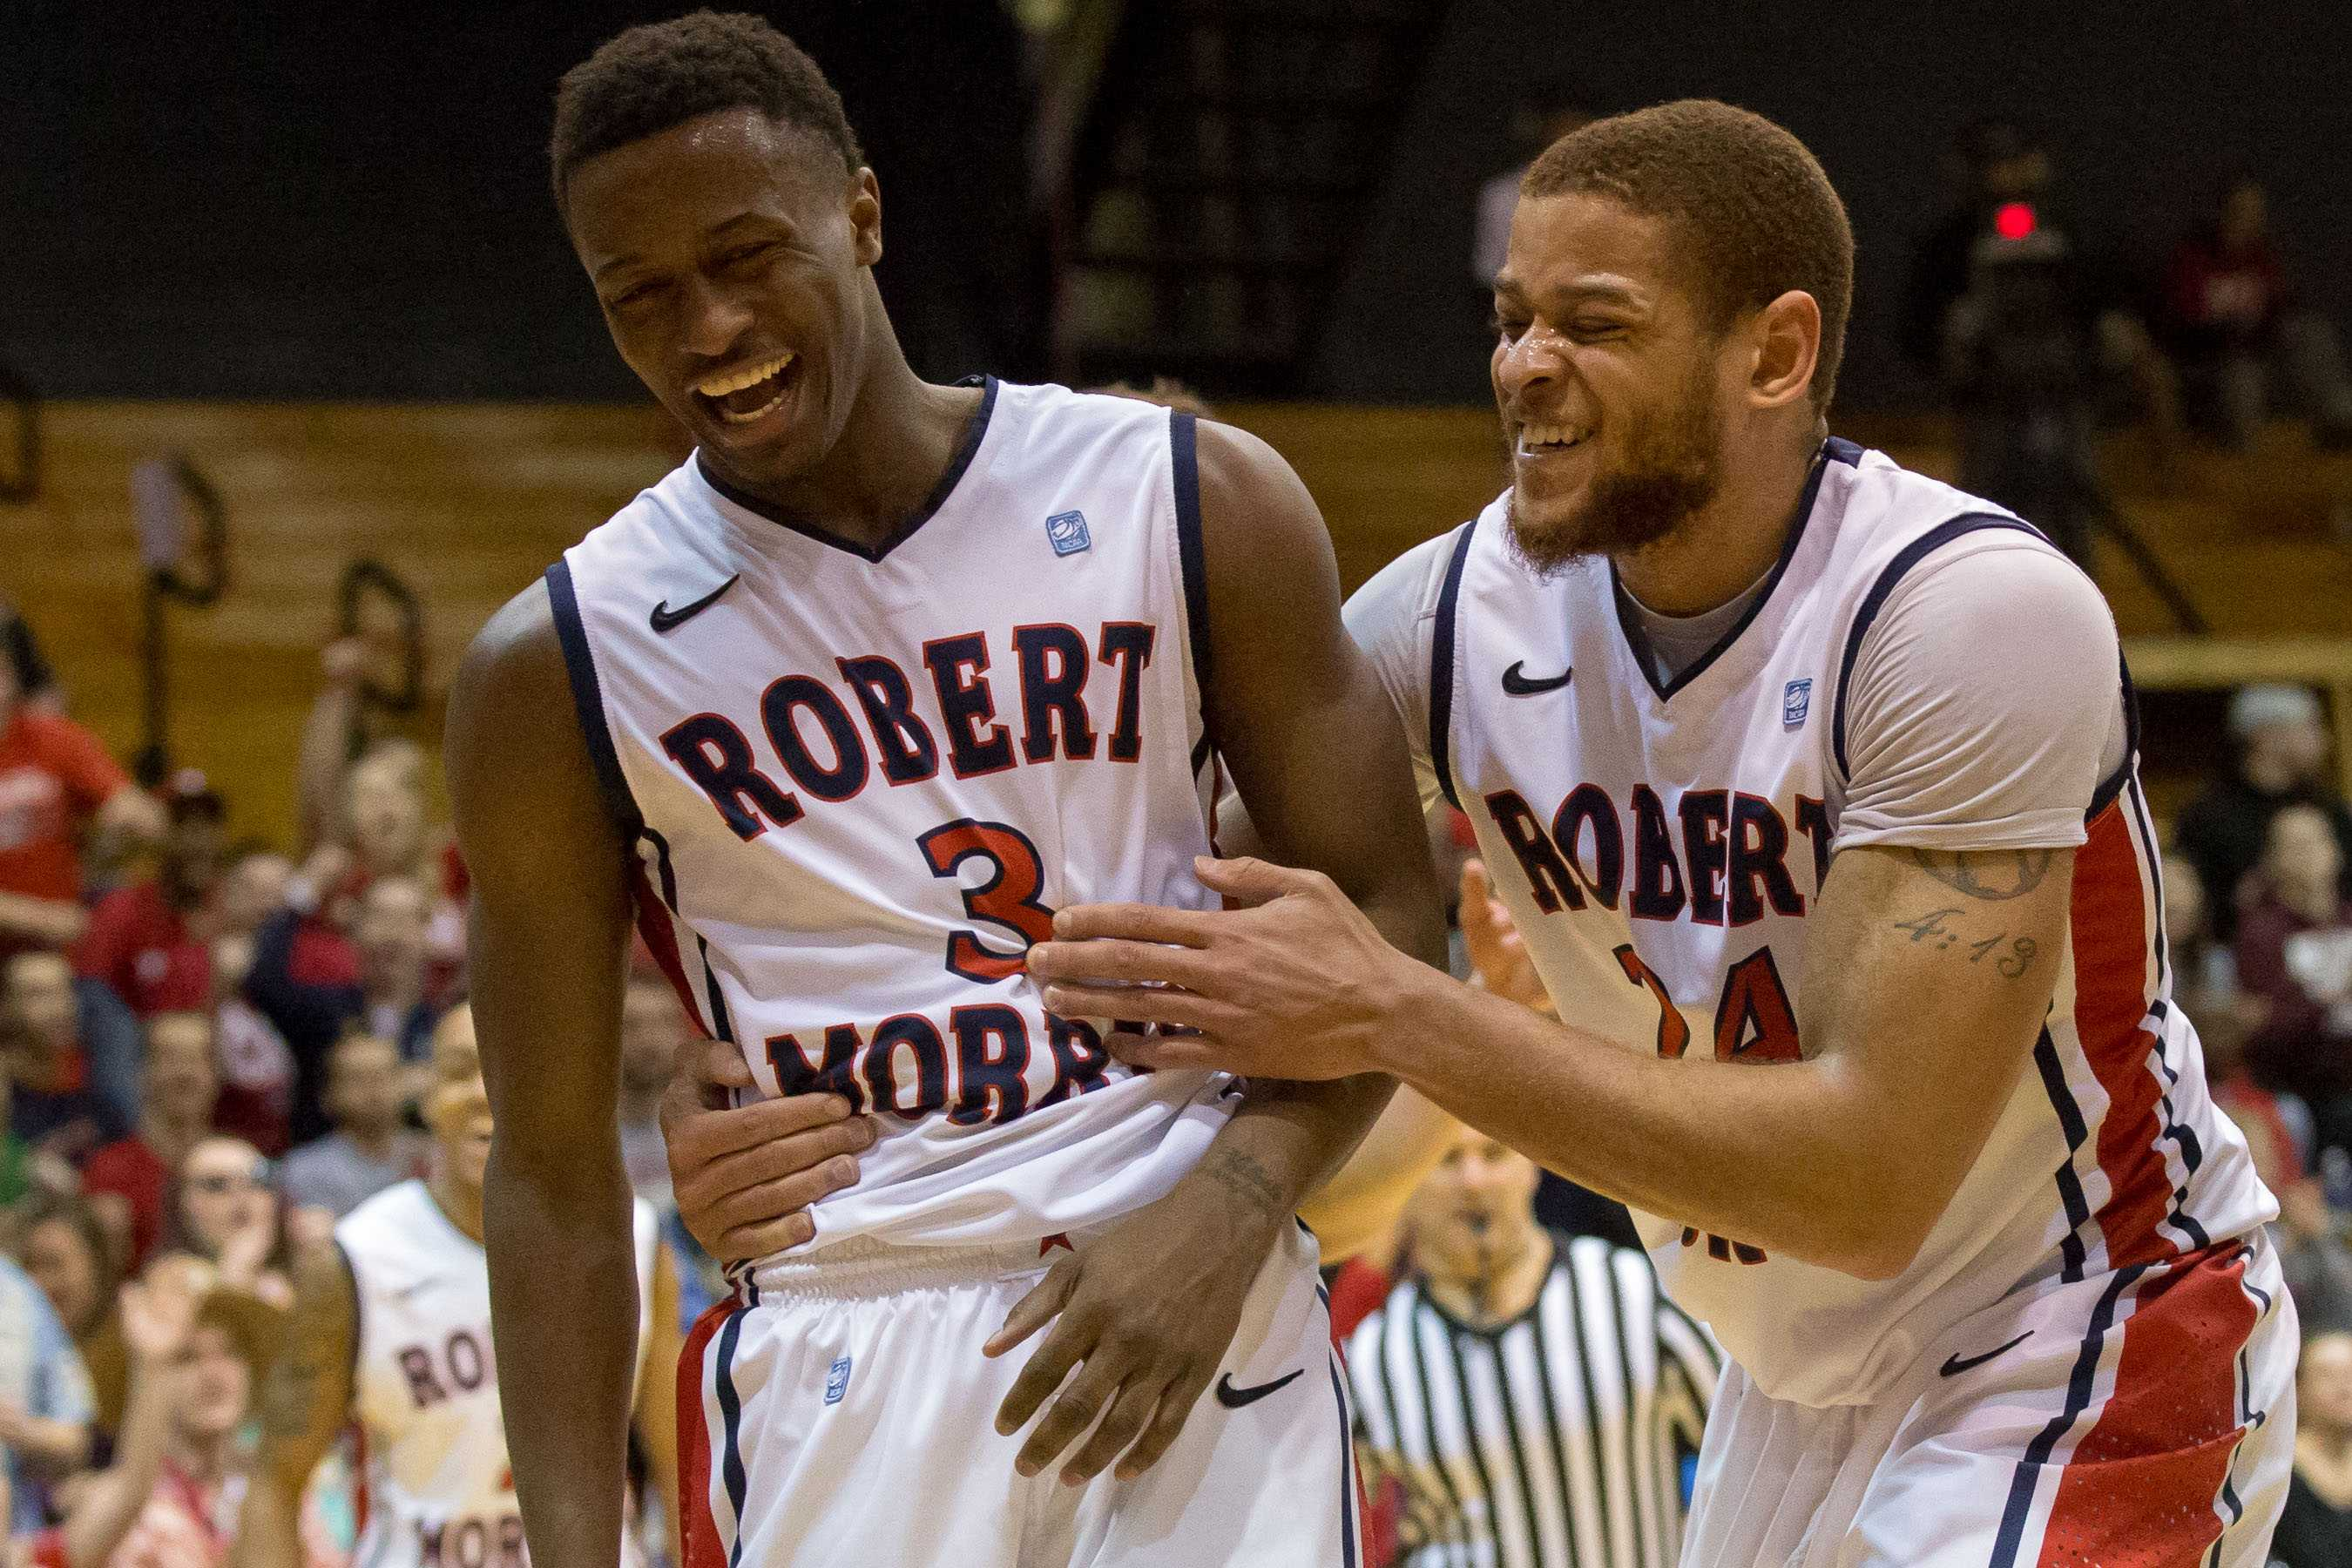 Aaron Tate and Kavon Stewart combined for 23 points Friday to help their team pick up win number one.